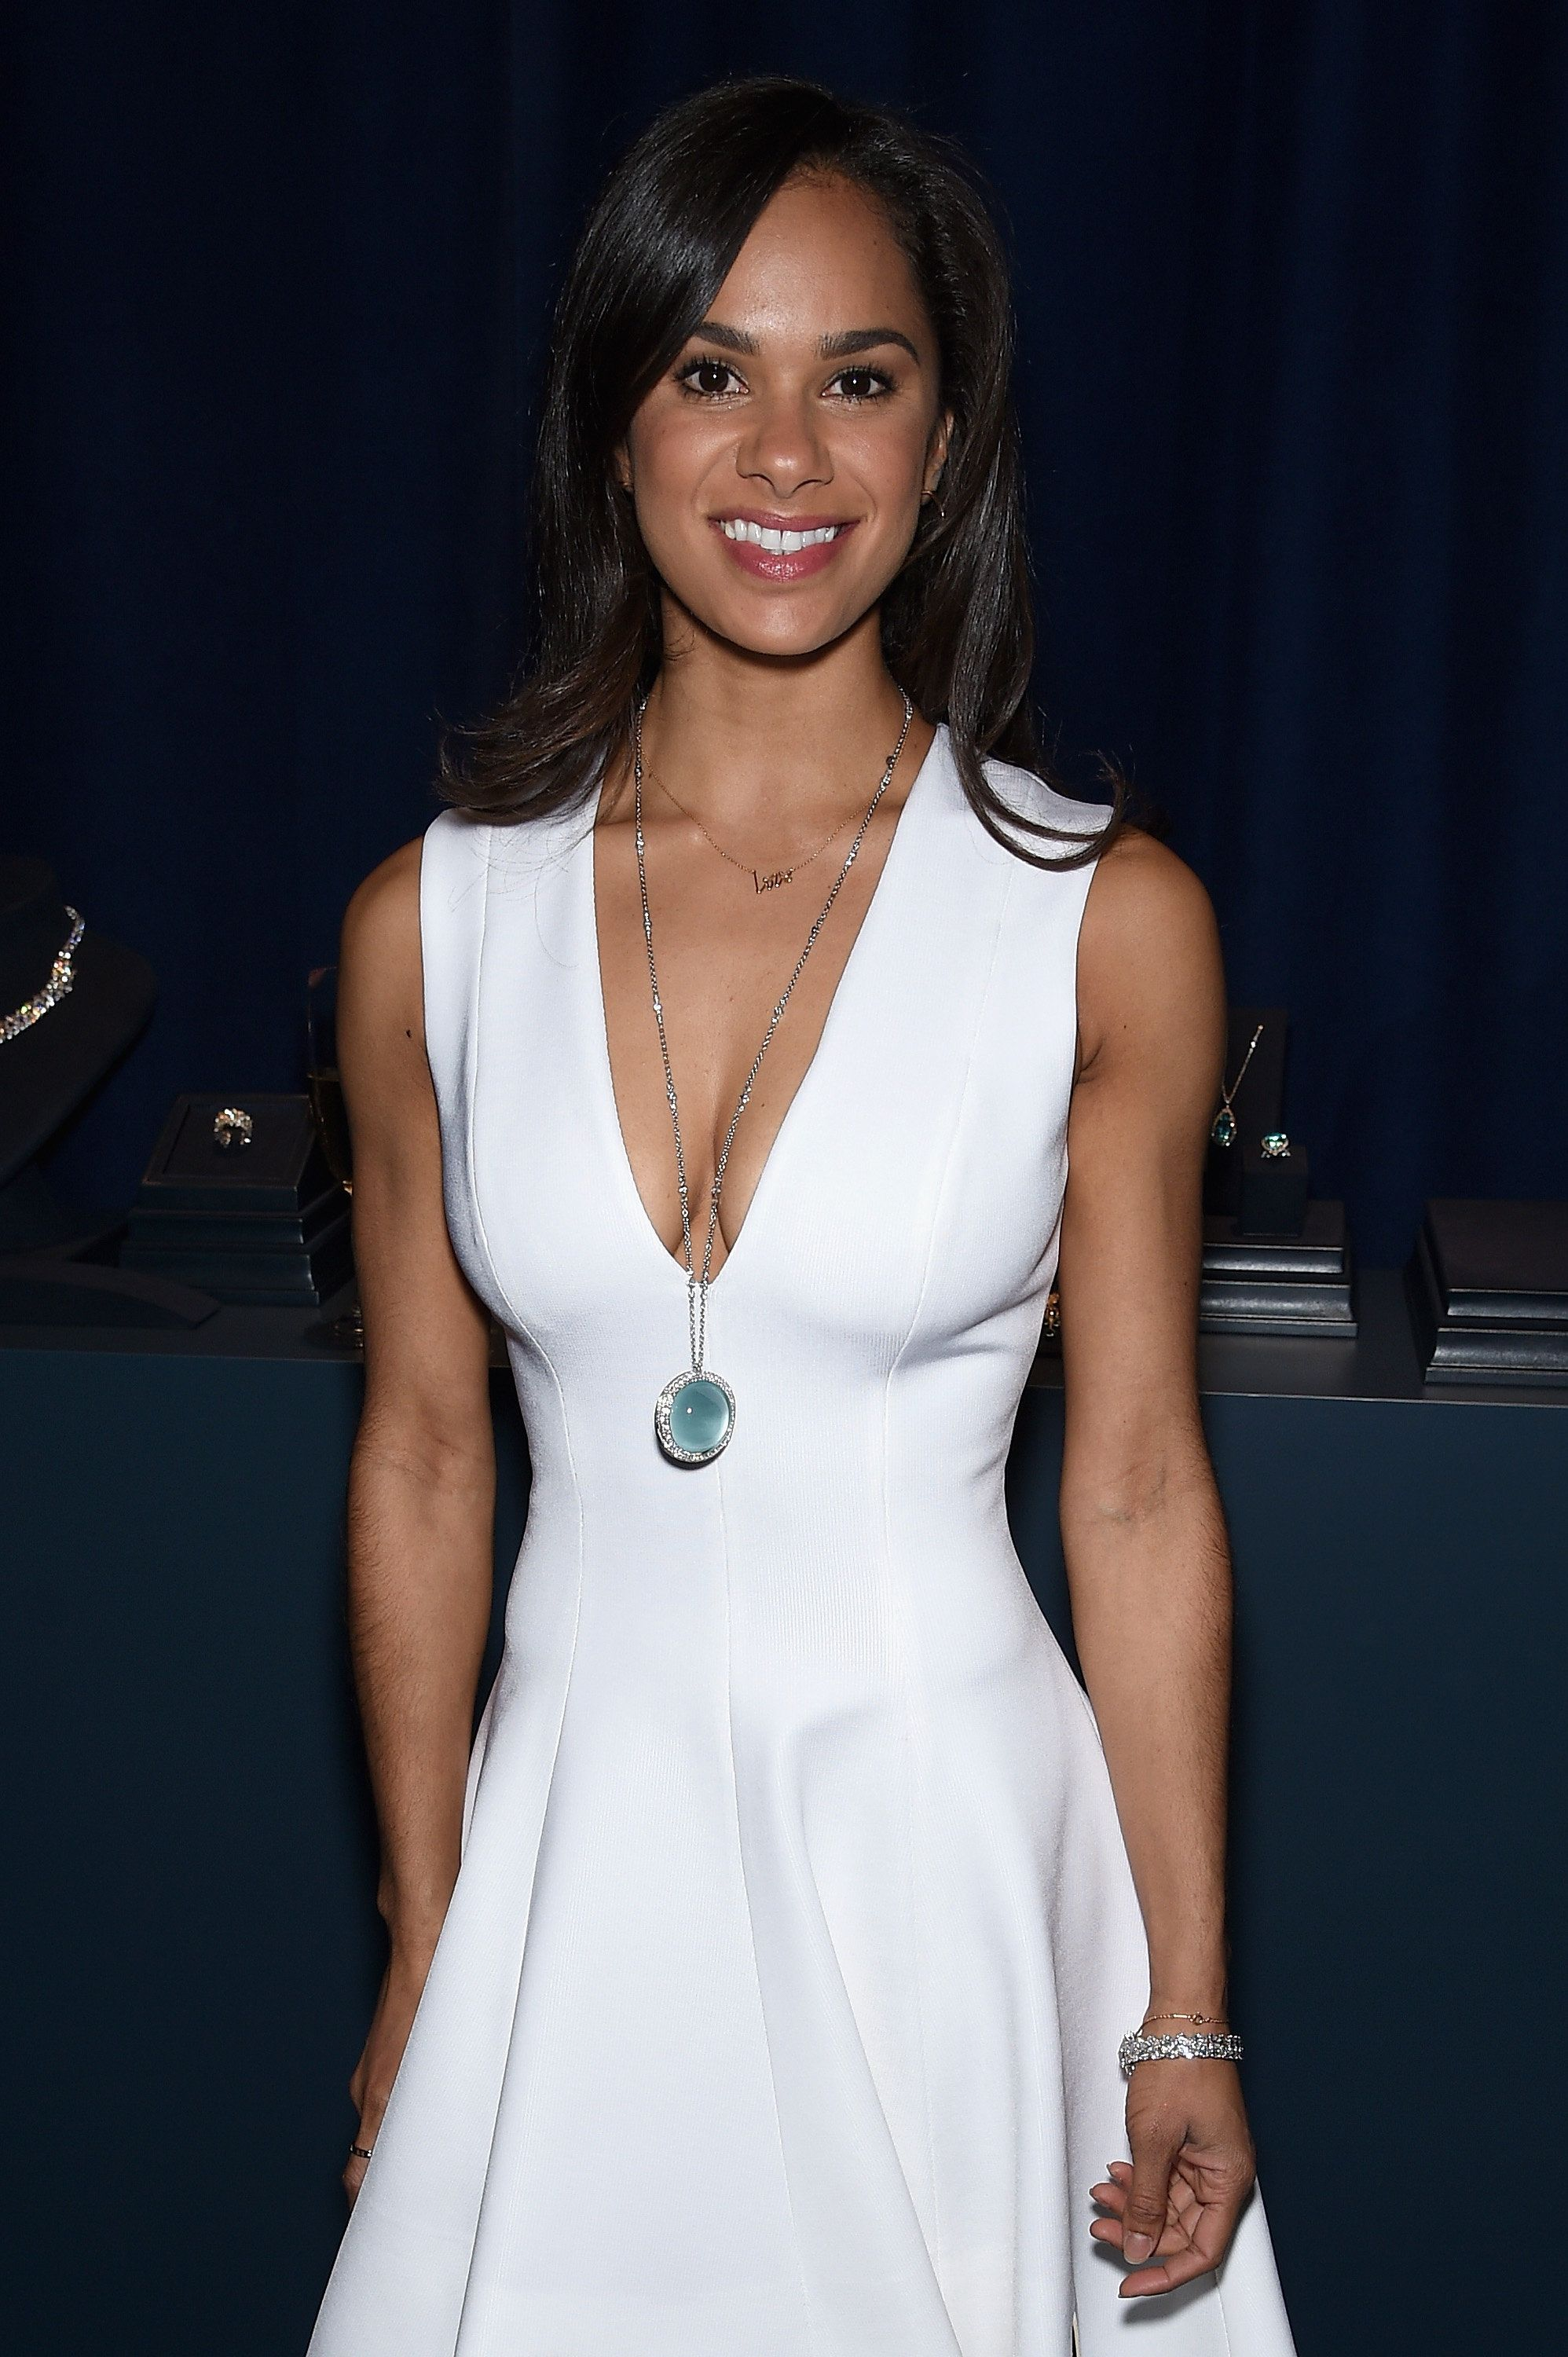 NEW YORK, NY - APRIL 15:  Ballet dancer Misty Copeland attends the 2015 Tiffany Blue Book dinner on April 15, 2015 in New York City.  (Photo by Dimitrios Kambouris/Getty Images for Tiffany & Co.)